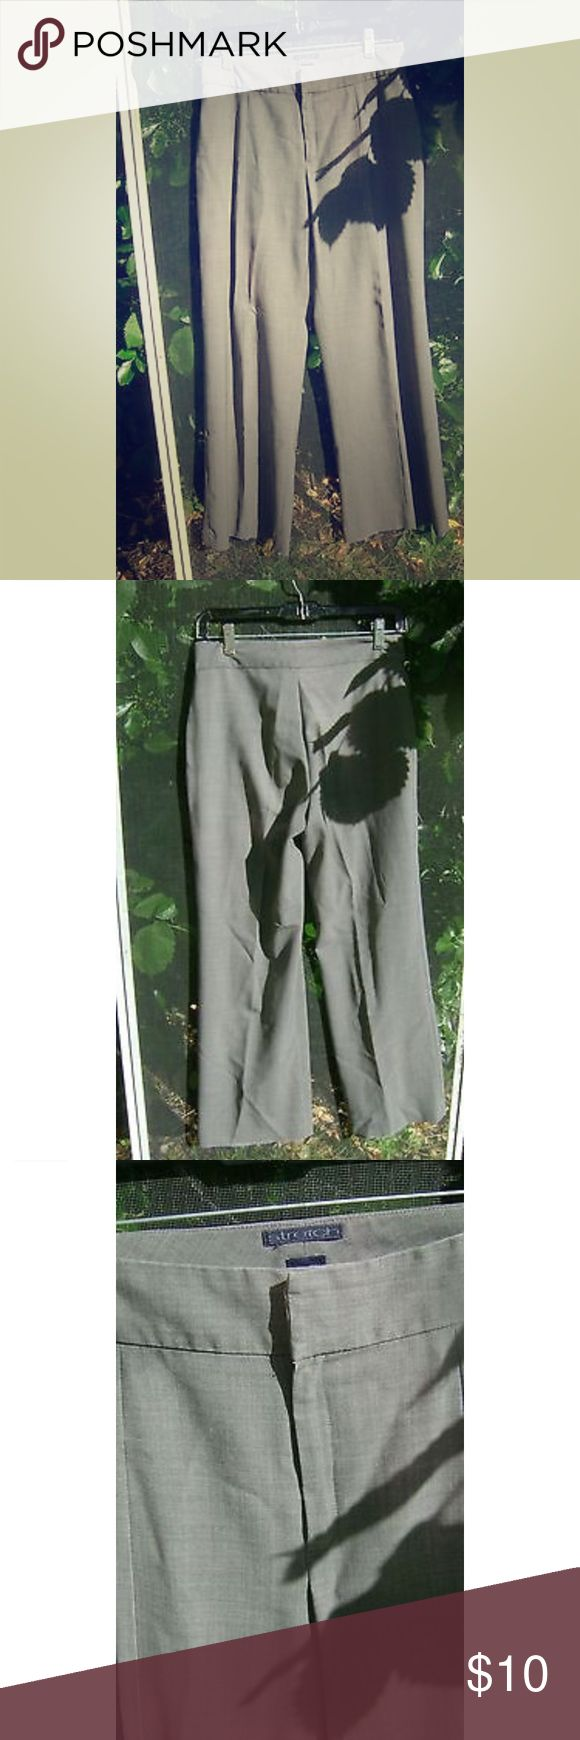 Womens Gray GAP Trouser Stretch pants 2 vintagey pair of quality. small spot & slight fading at the very bottom (pictured) but otherwise wonderful condition! They're stretchy and comfy. GAP Pants Trousers